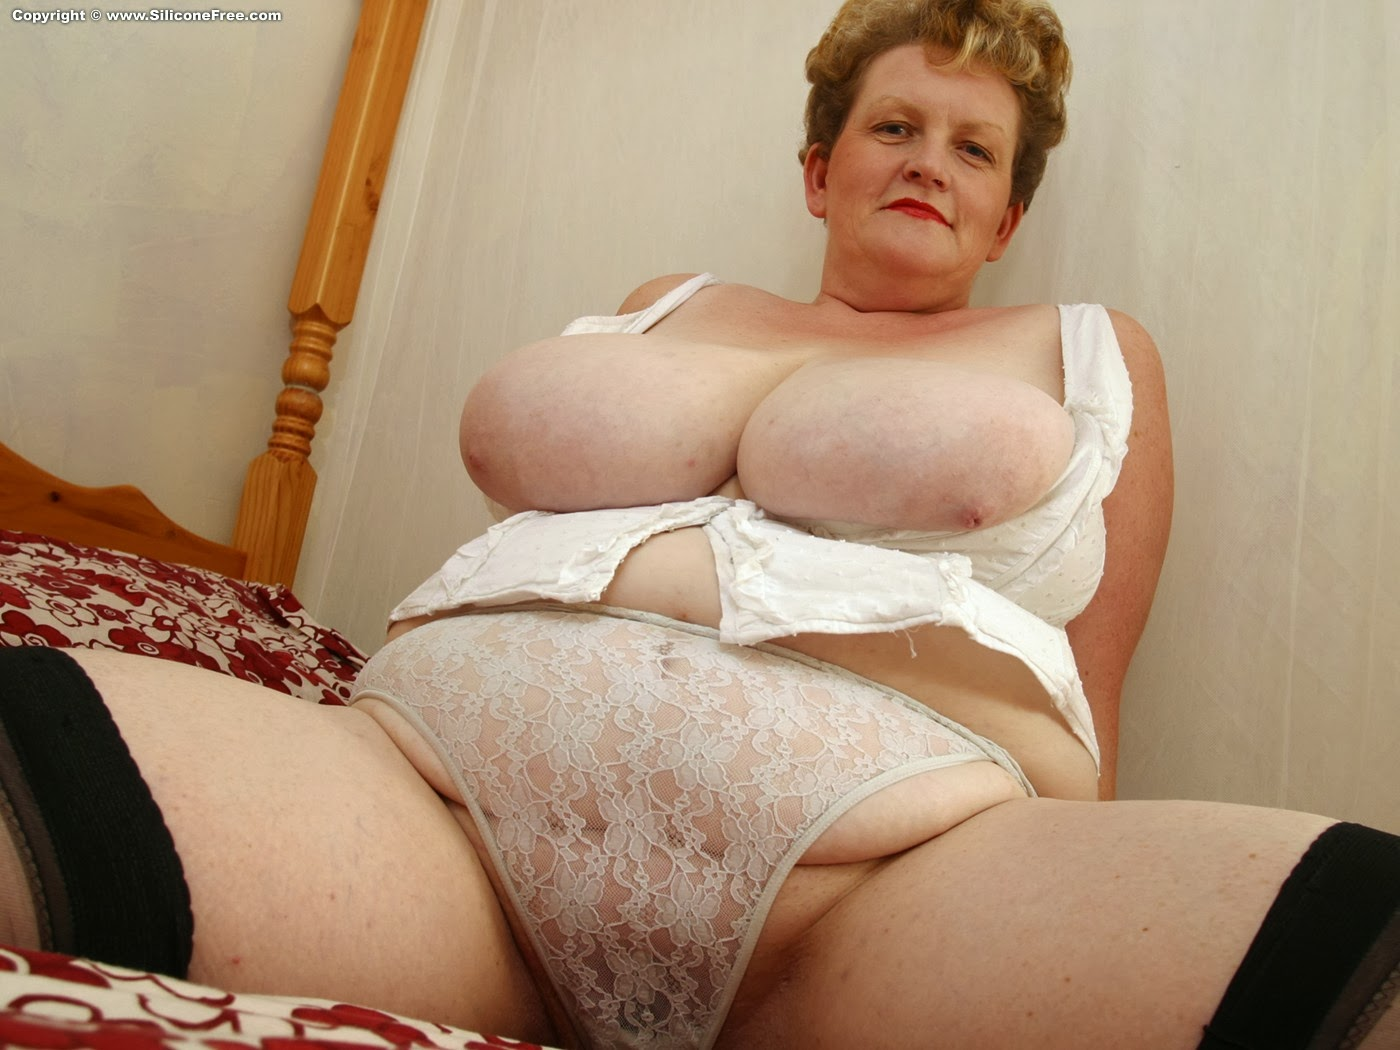 Mature women with massive tits